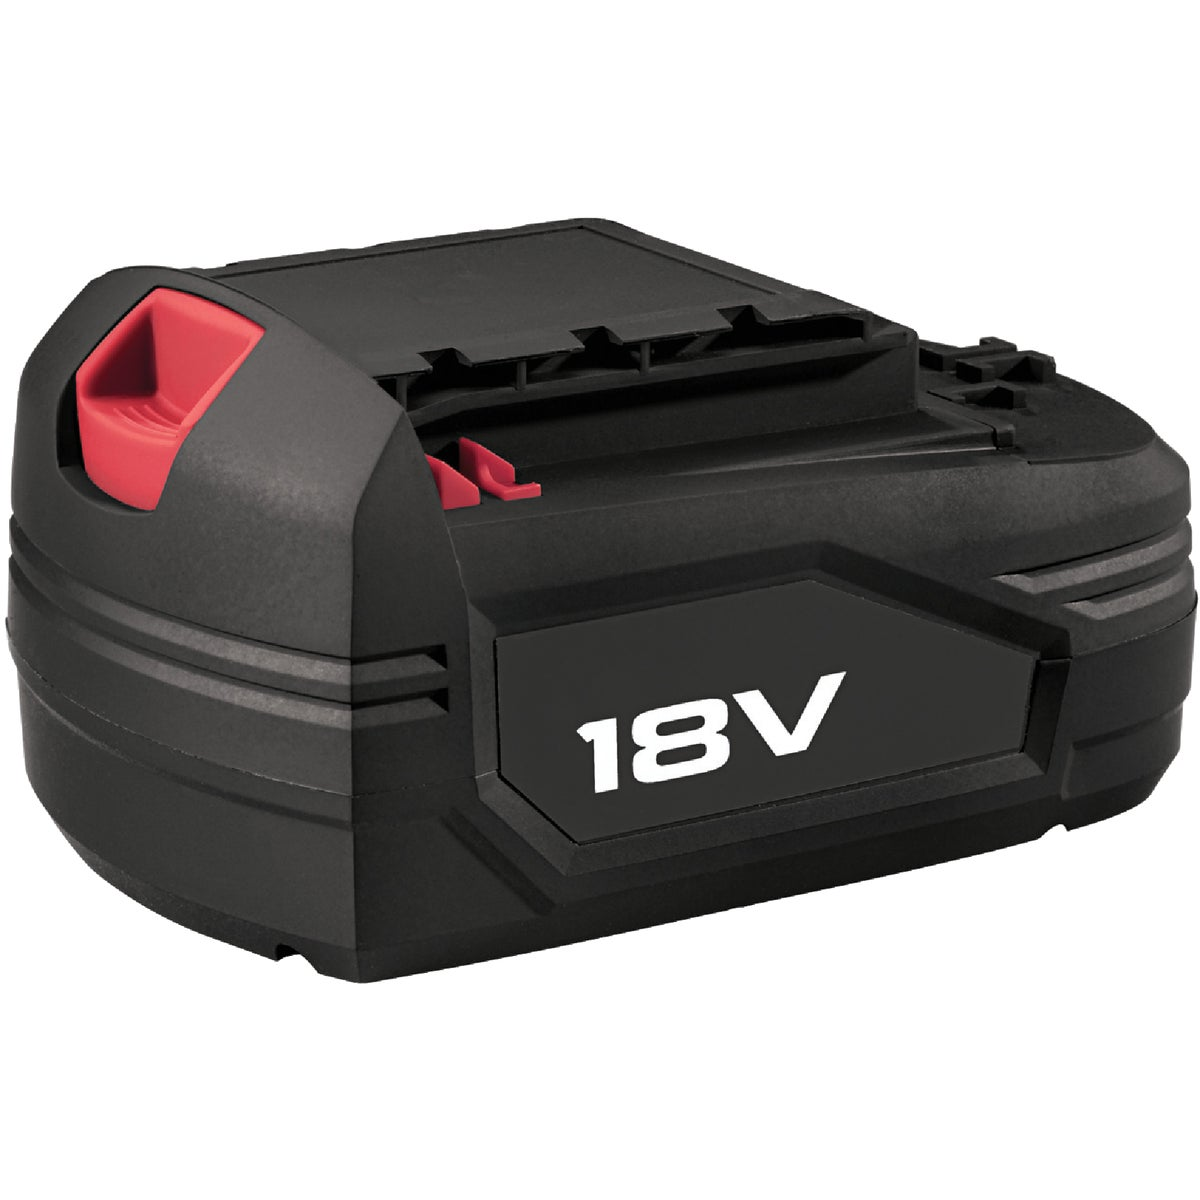 18V SLIDE PACK BATTERY